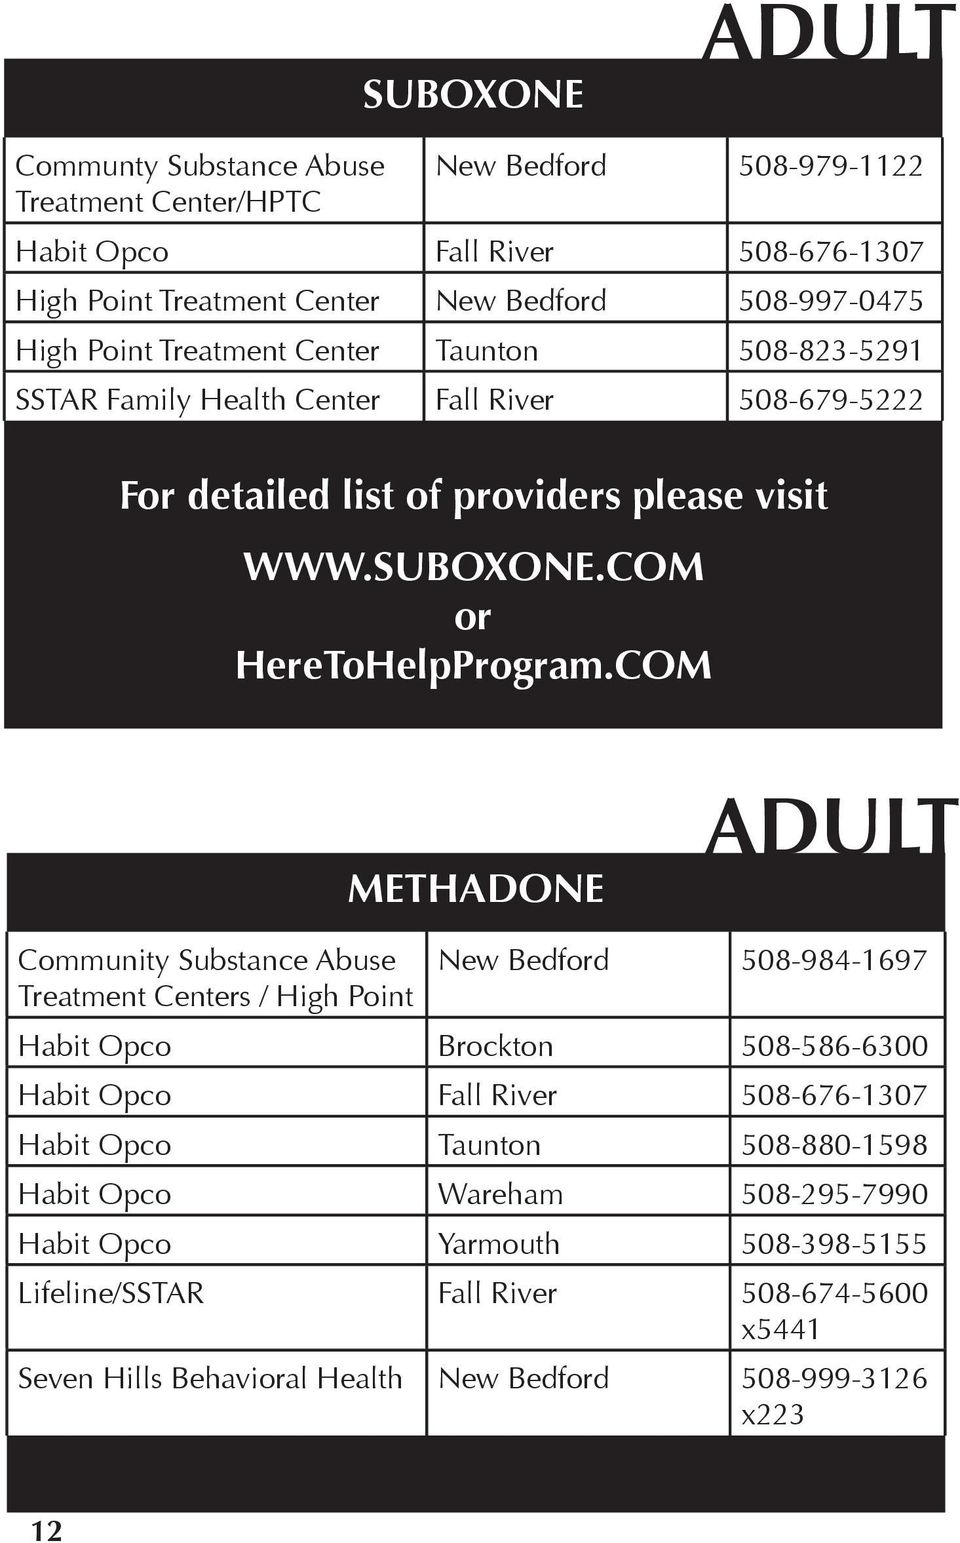 COM METHADONE ADULT Community Substance Abuse New Bedford 508-984-1697 Treatment Centers / High Point Habit Opco Brockton 508-586-6300 Habit Opco Fall River 508-676-1307 Habit Opco